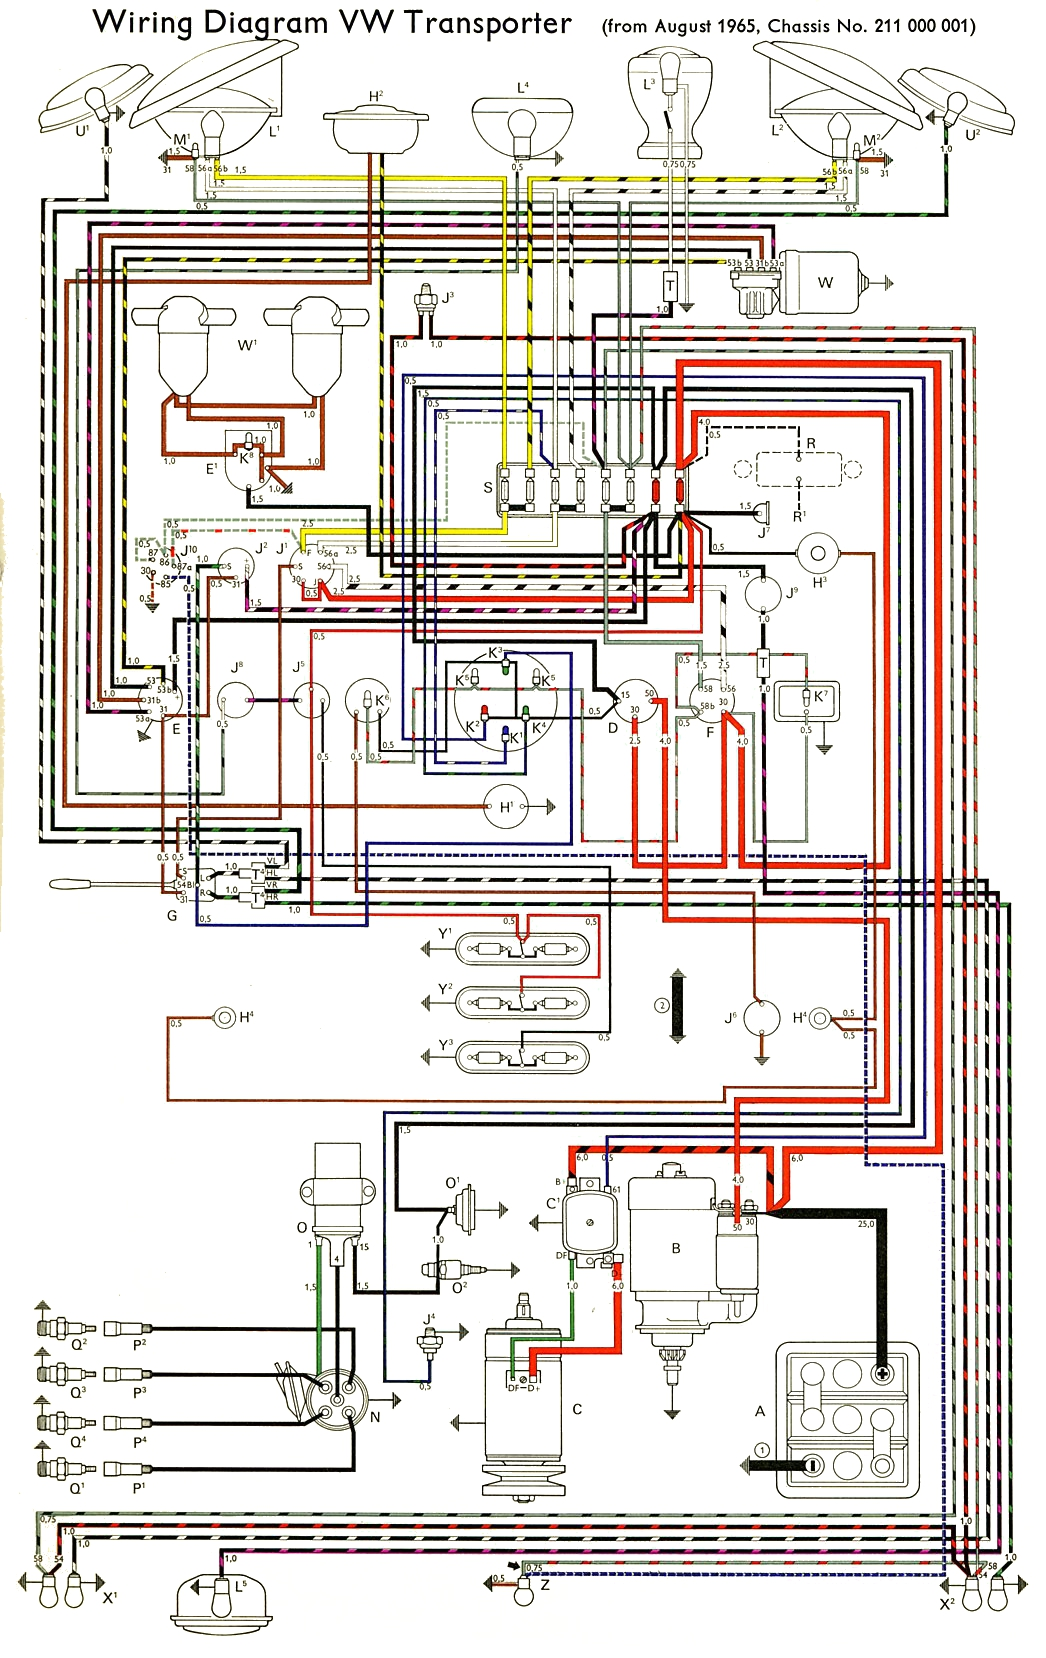 bus_66 1965 type 2 wiring diagram 1965 wiring diagrams collection  at edmiracle.co